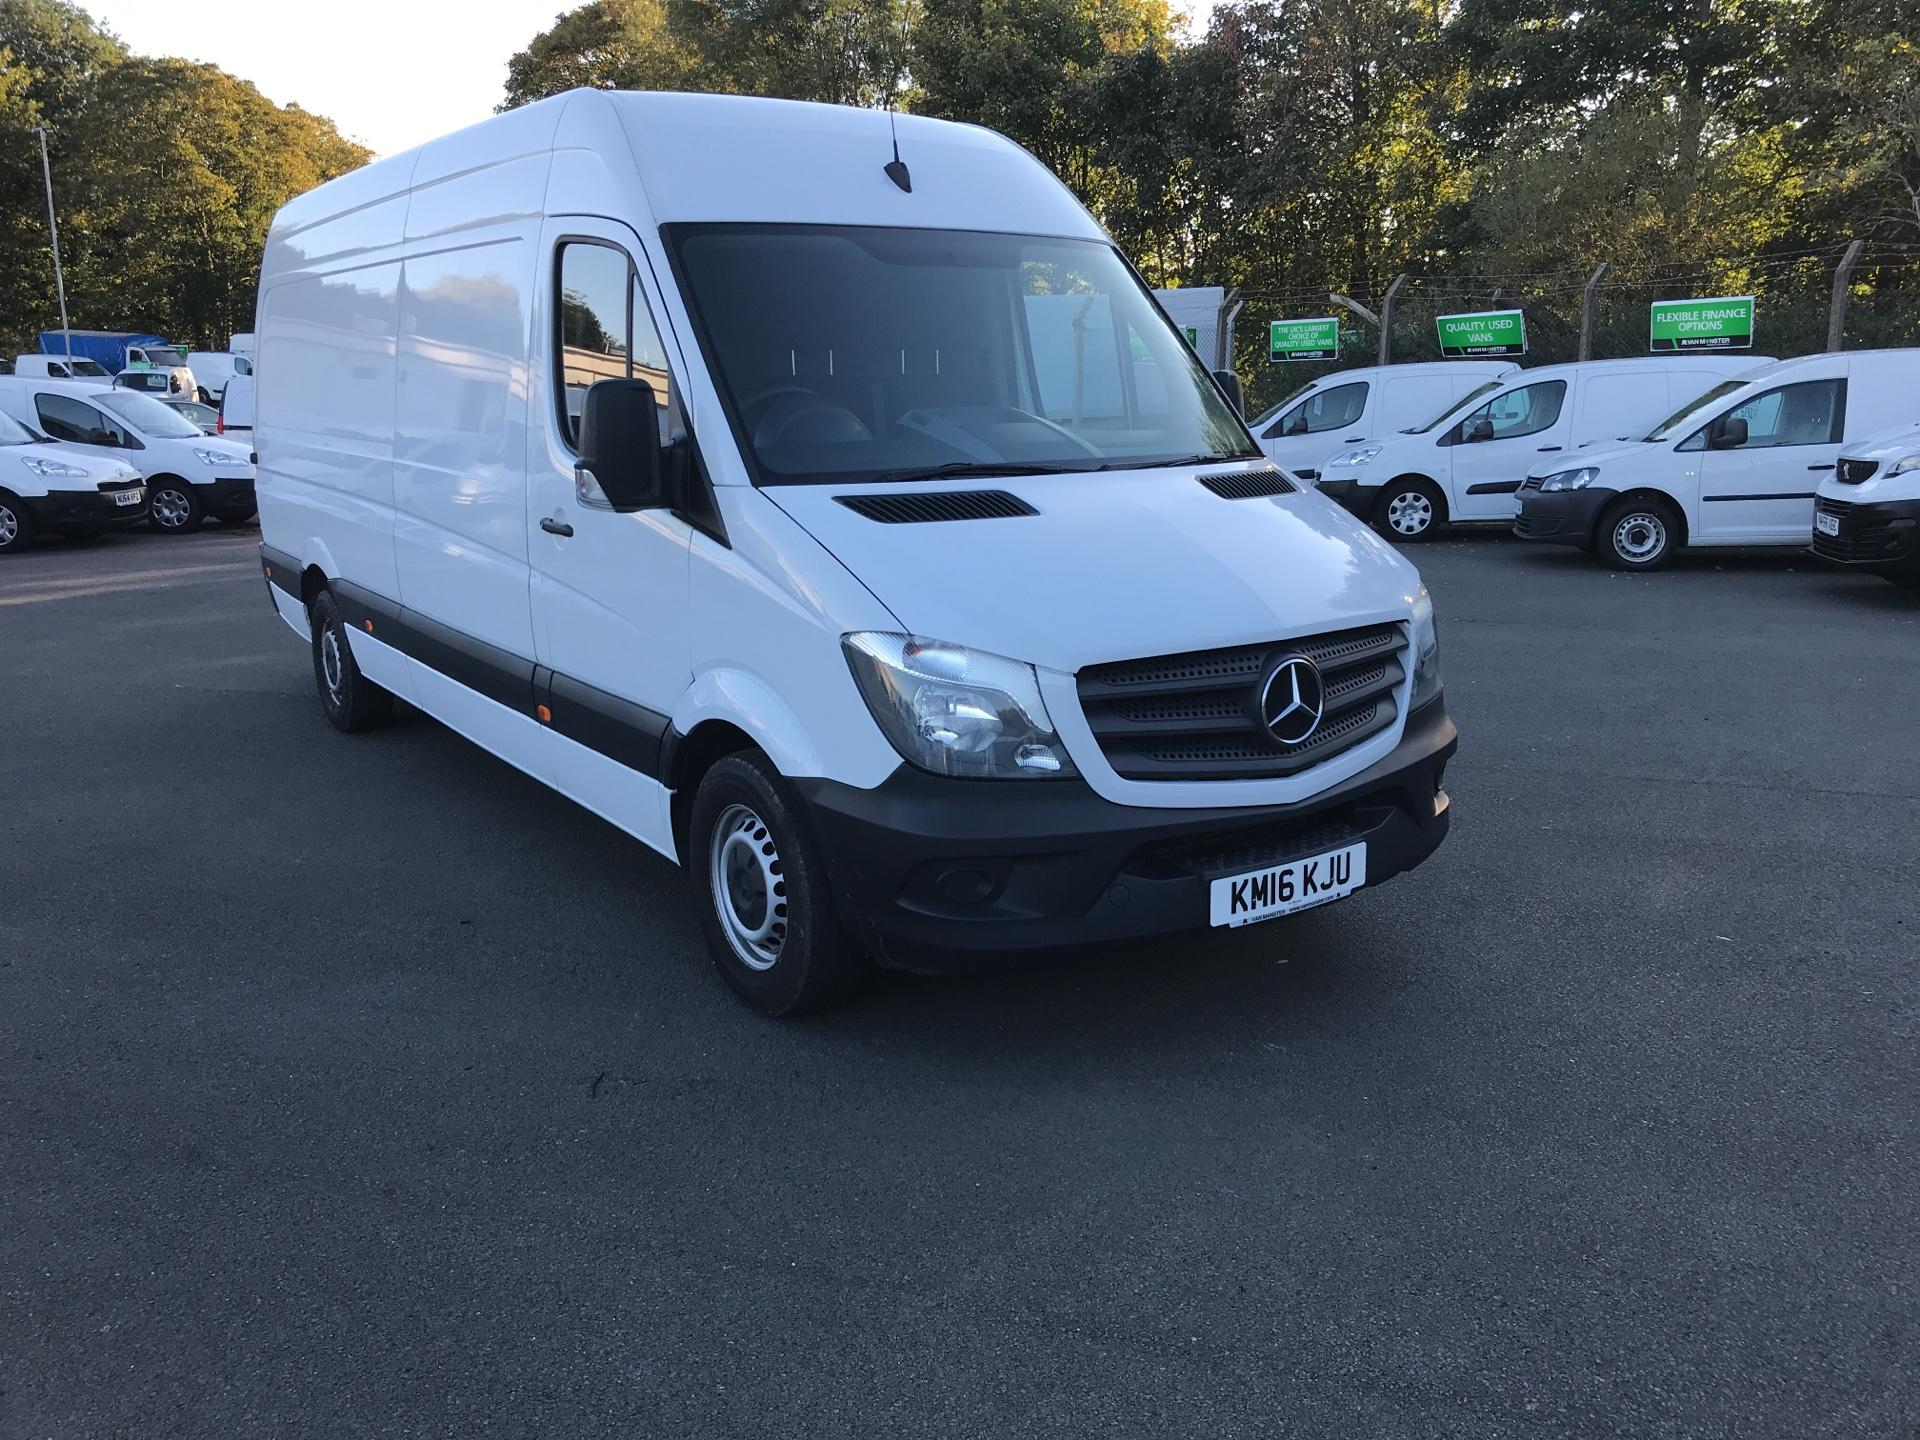 2016 Mercedes-Benz Sprinter  313 LWB H/R EURO 5 129PS *VALUE RANGE VEHICLE - CONDITION REFLECTED IN PRICE* (KM16KJU)